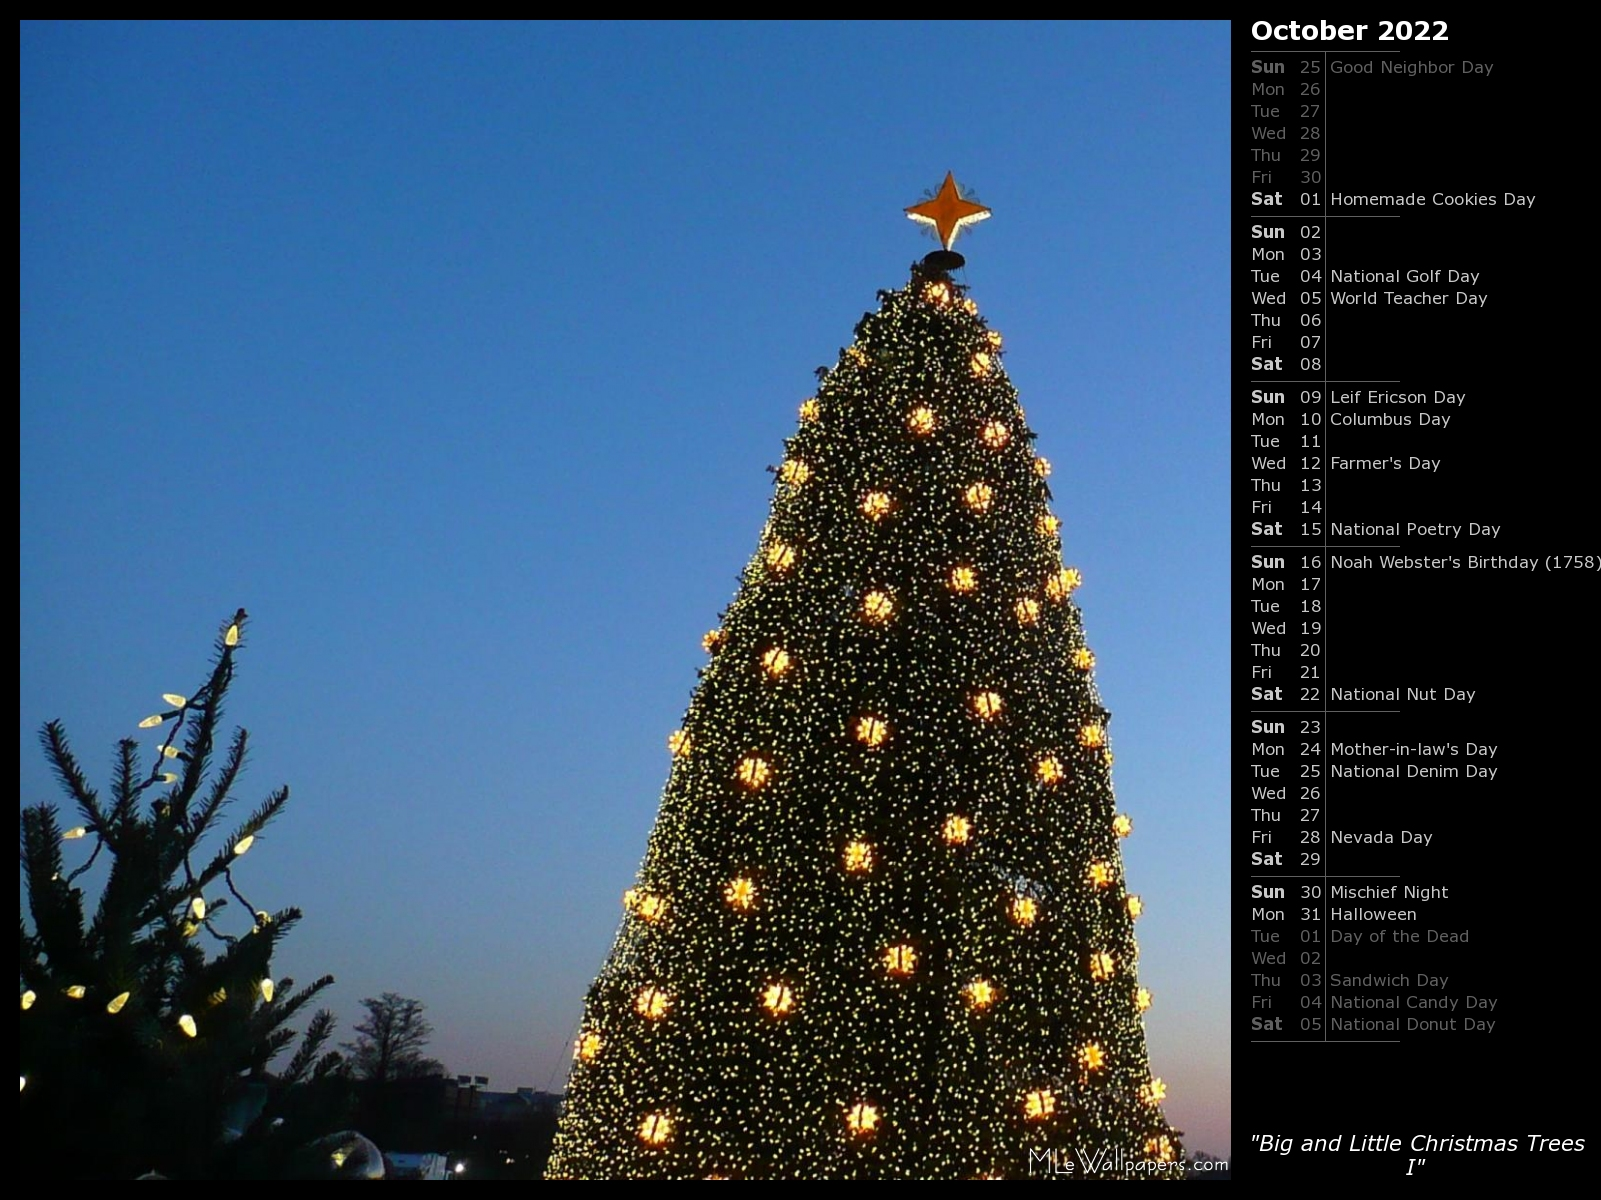 National Christmas Tree 2019.Mlewallpapers Com Big And Little Christmas Trees I Calendar